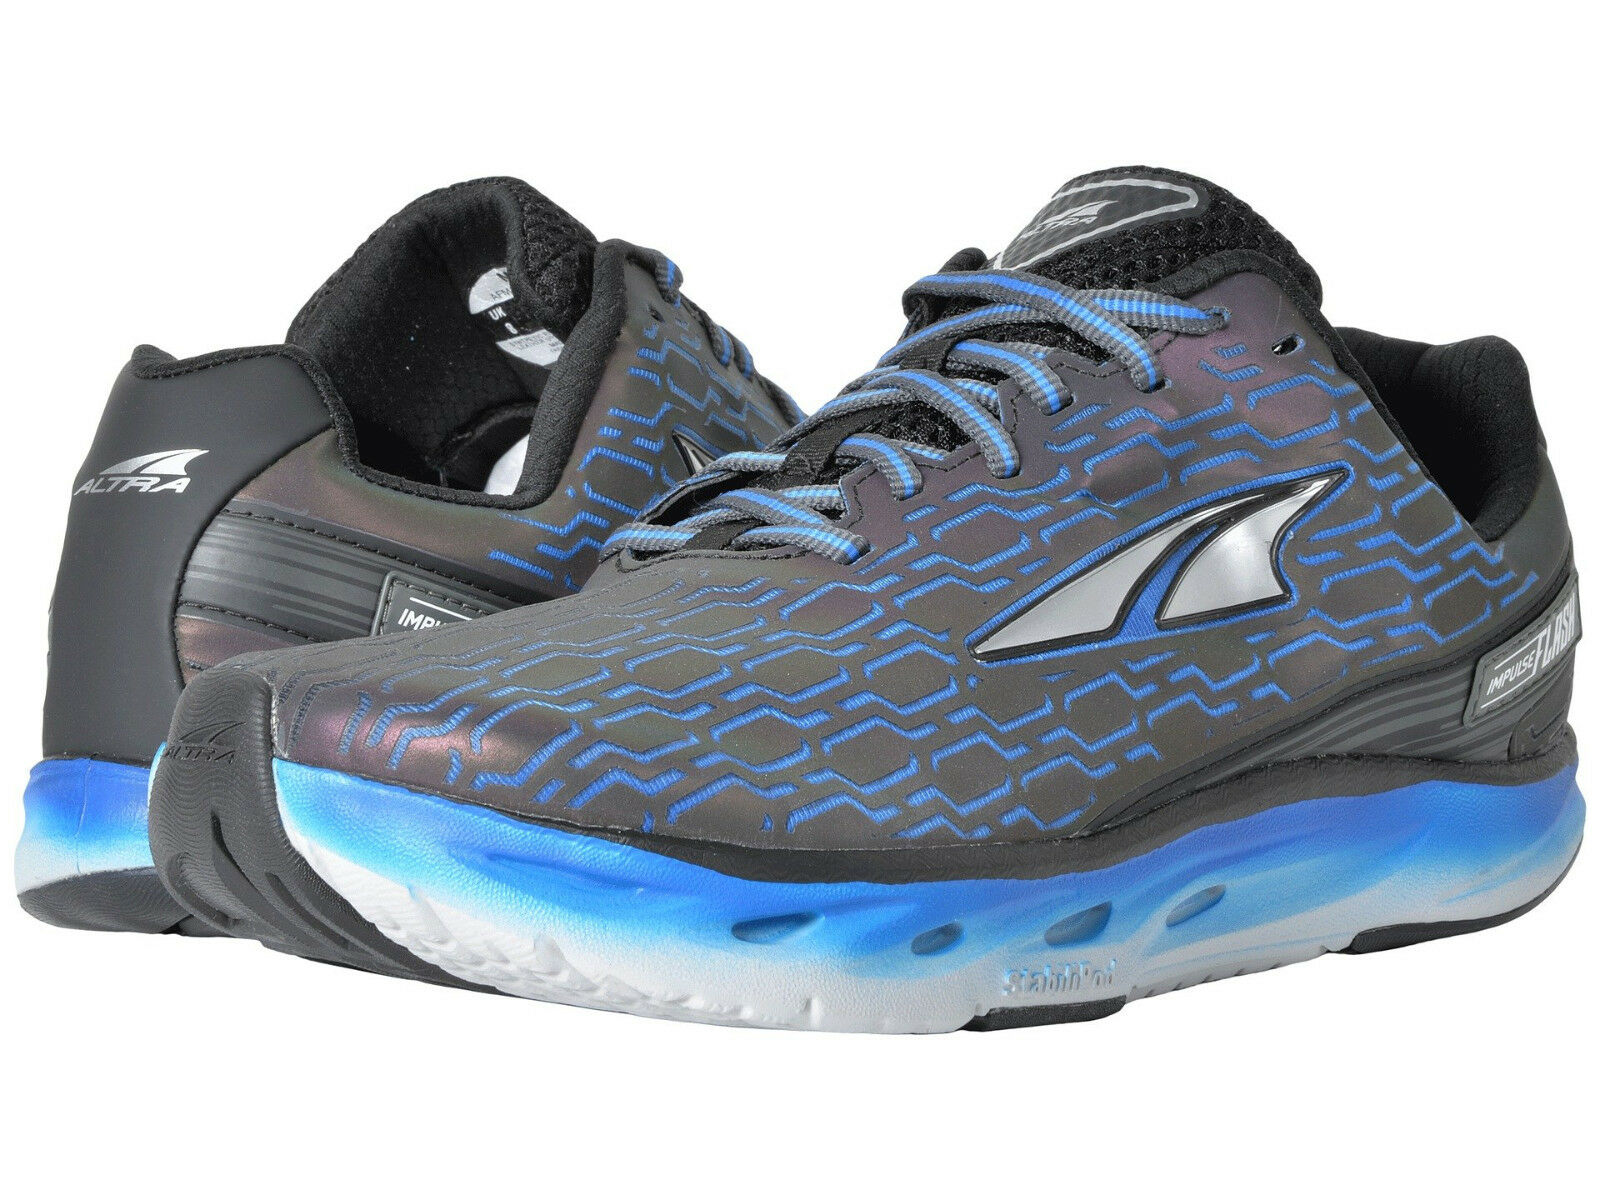 Altra Impulse Flash Running Shoes, Men's Sizes 11.5-12-13 D, Black / Blue, NEW!